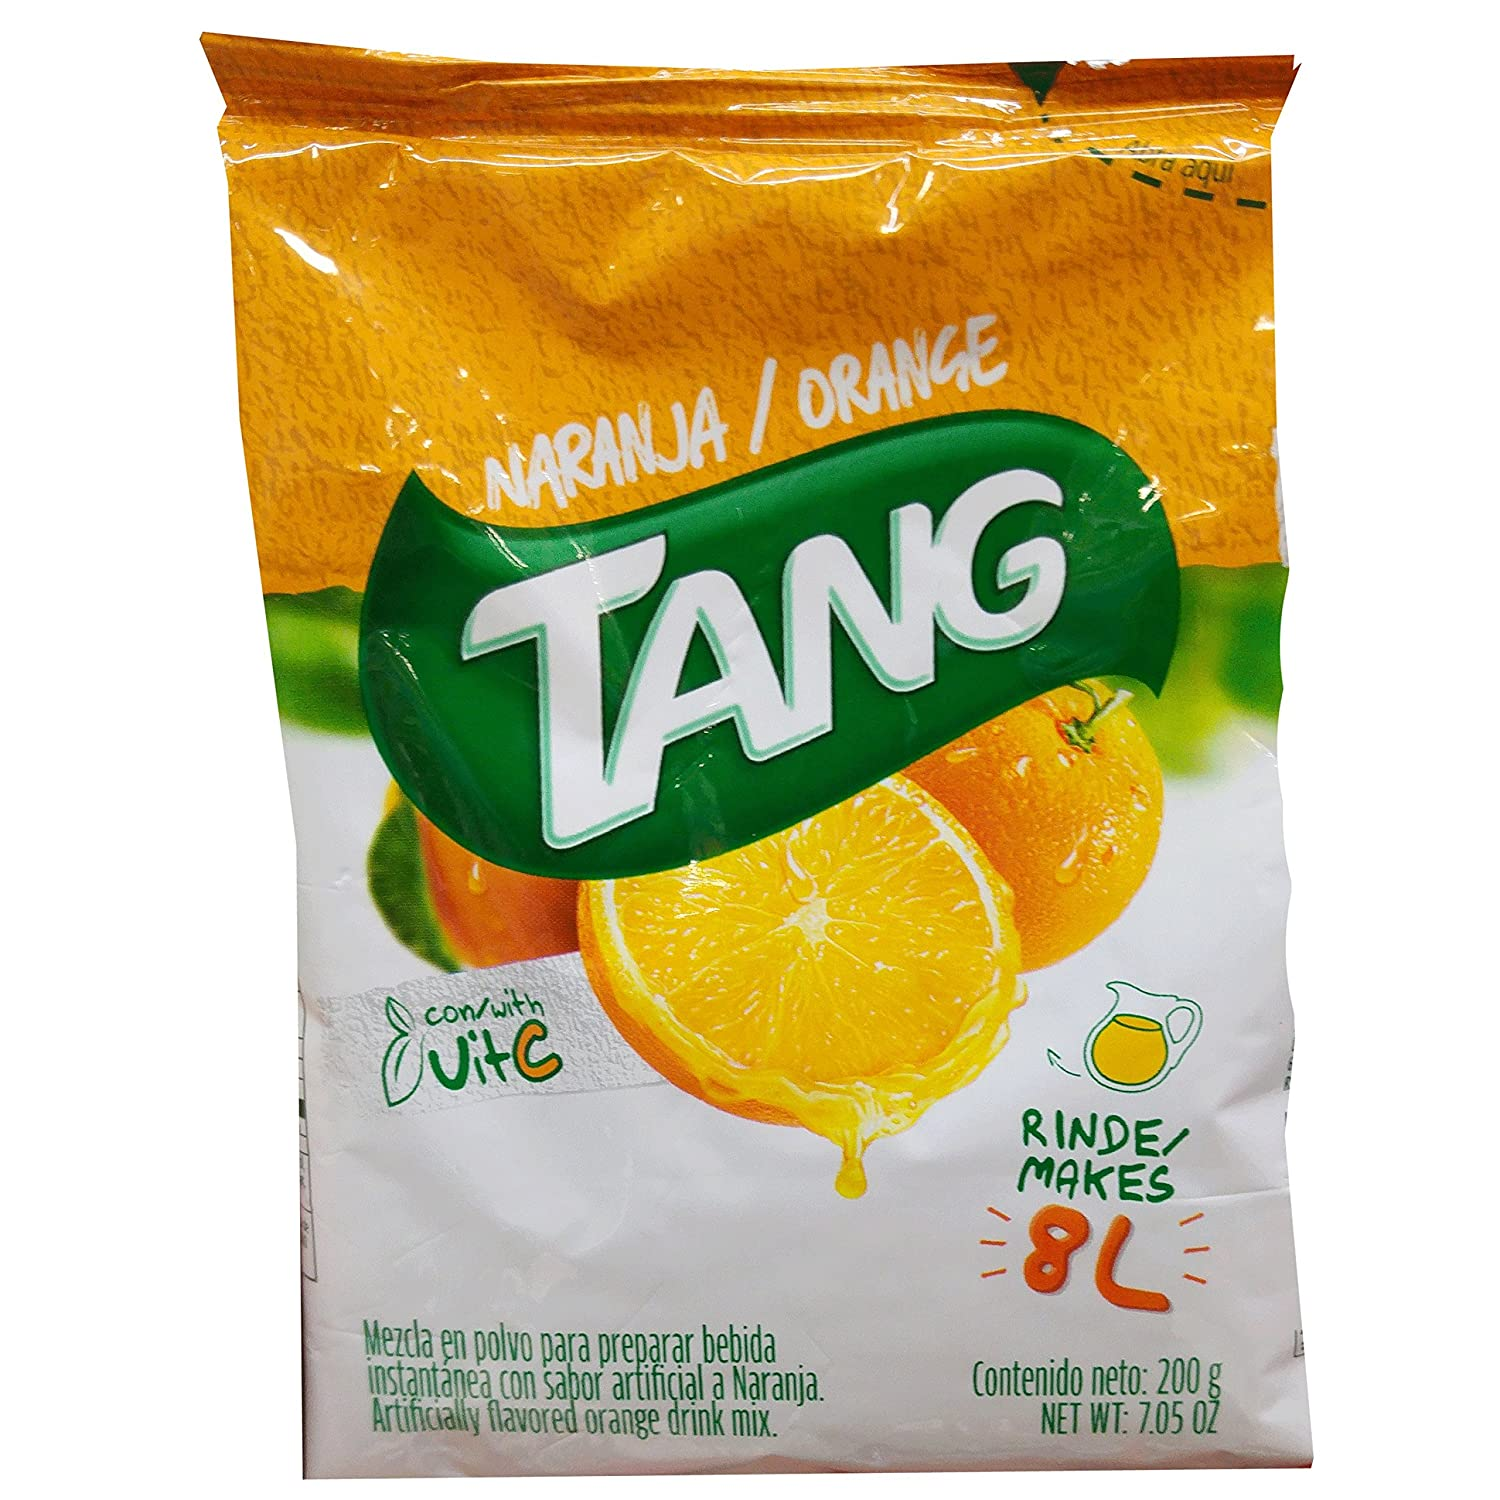 Amazon.com : Tang (Latin America Edition) (Melon, 25g | 12 Pack) : Grocery & Gourmet Food